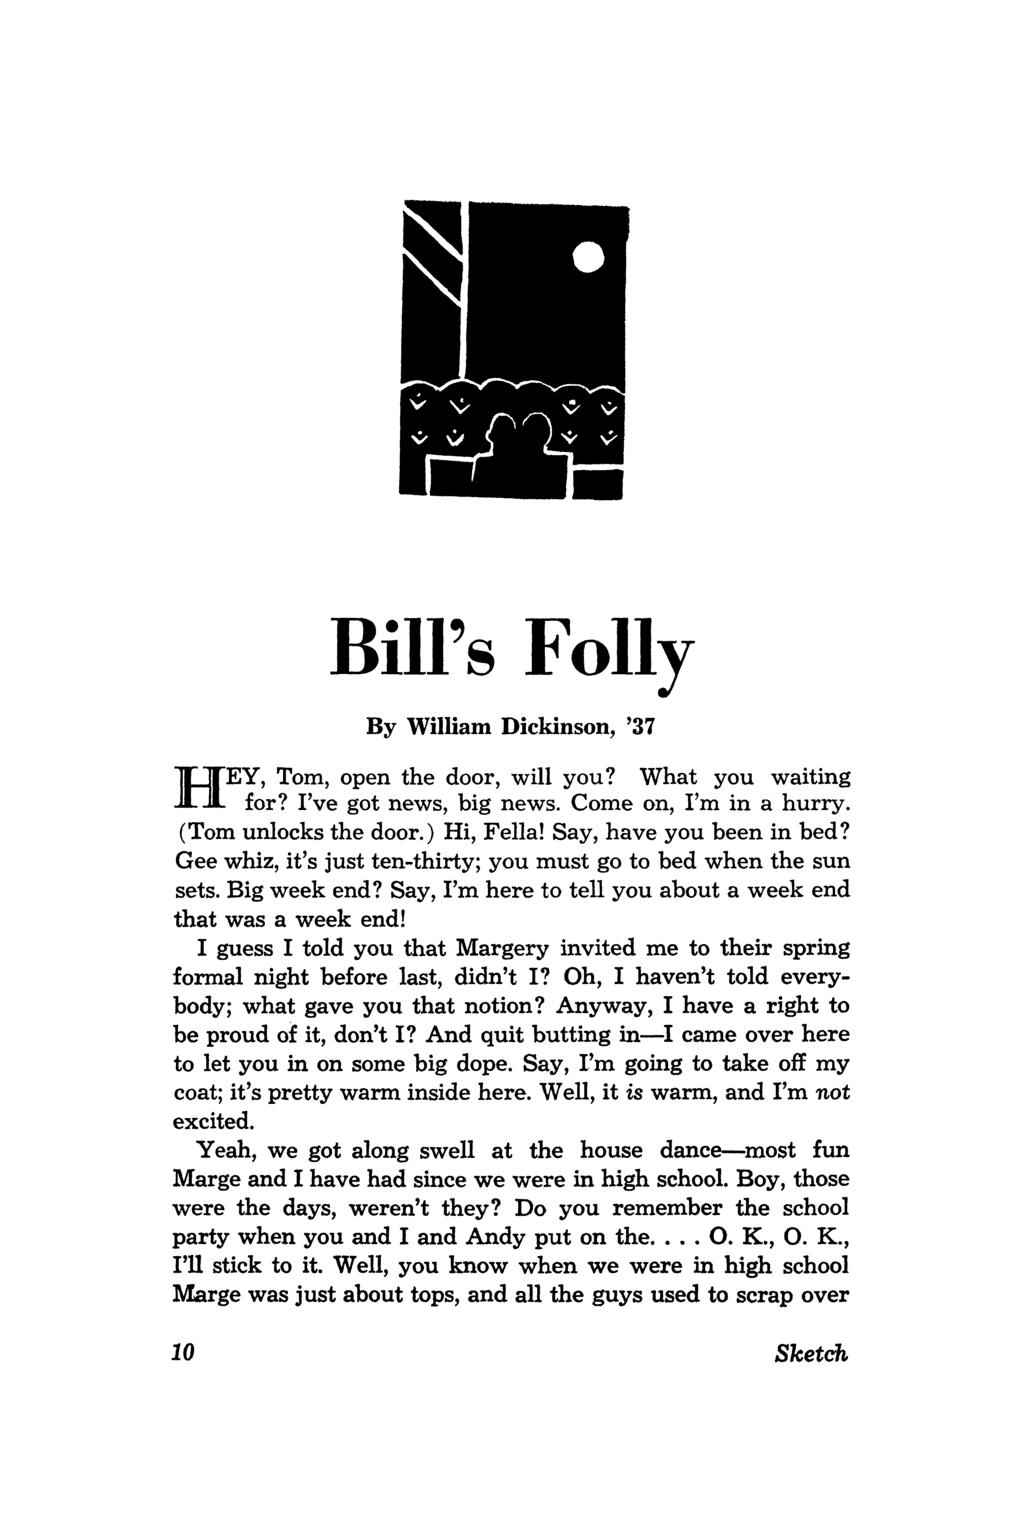 H BiU's Folly By William Dickinson, '37 EY, Tom, open the door, will you? What you waiting for? I've got news, big news. Come on, I'm in a hurry. (Tom unlocks the door.) Hi, Fella!